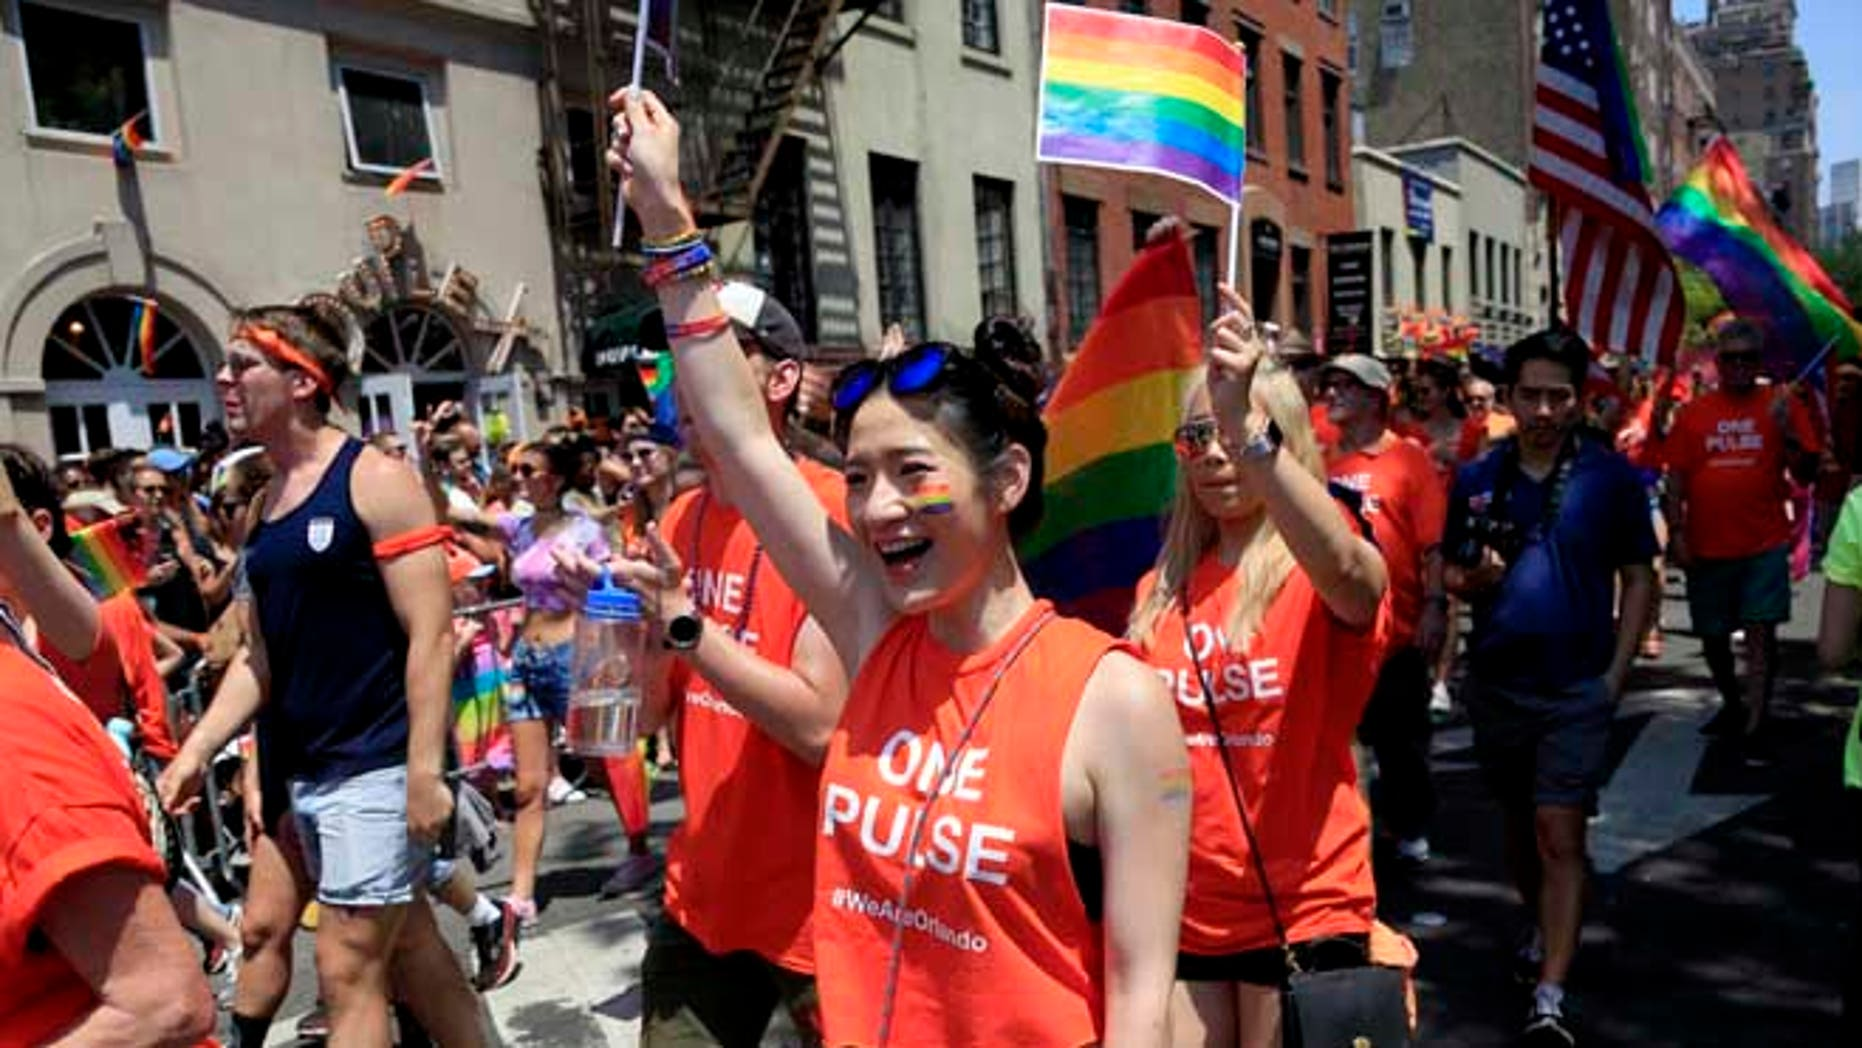 Participants in the NYC Pride Parade wear shirts in support of the victims of the Orlando massacre in New York, Sunday, June 26, 2016. A year after New York City's jubilant pride parade celebrated a high point for gay Americans with the nationwide legalization of same-sex marriage, the atmosphere surrounding the annual march couldn't be more different. Sunday's parades in New York, San Francisco and other cities are unfolding two weeks after a gay nightclub in Florida became the site of the nation's deadliest mass shooting by a single gunman in modern U.S. history. (AP Photo/Seth Wenig)